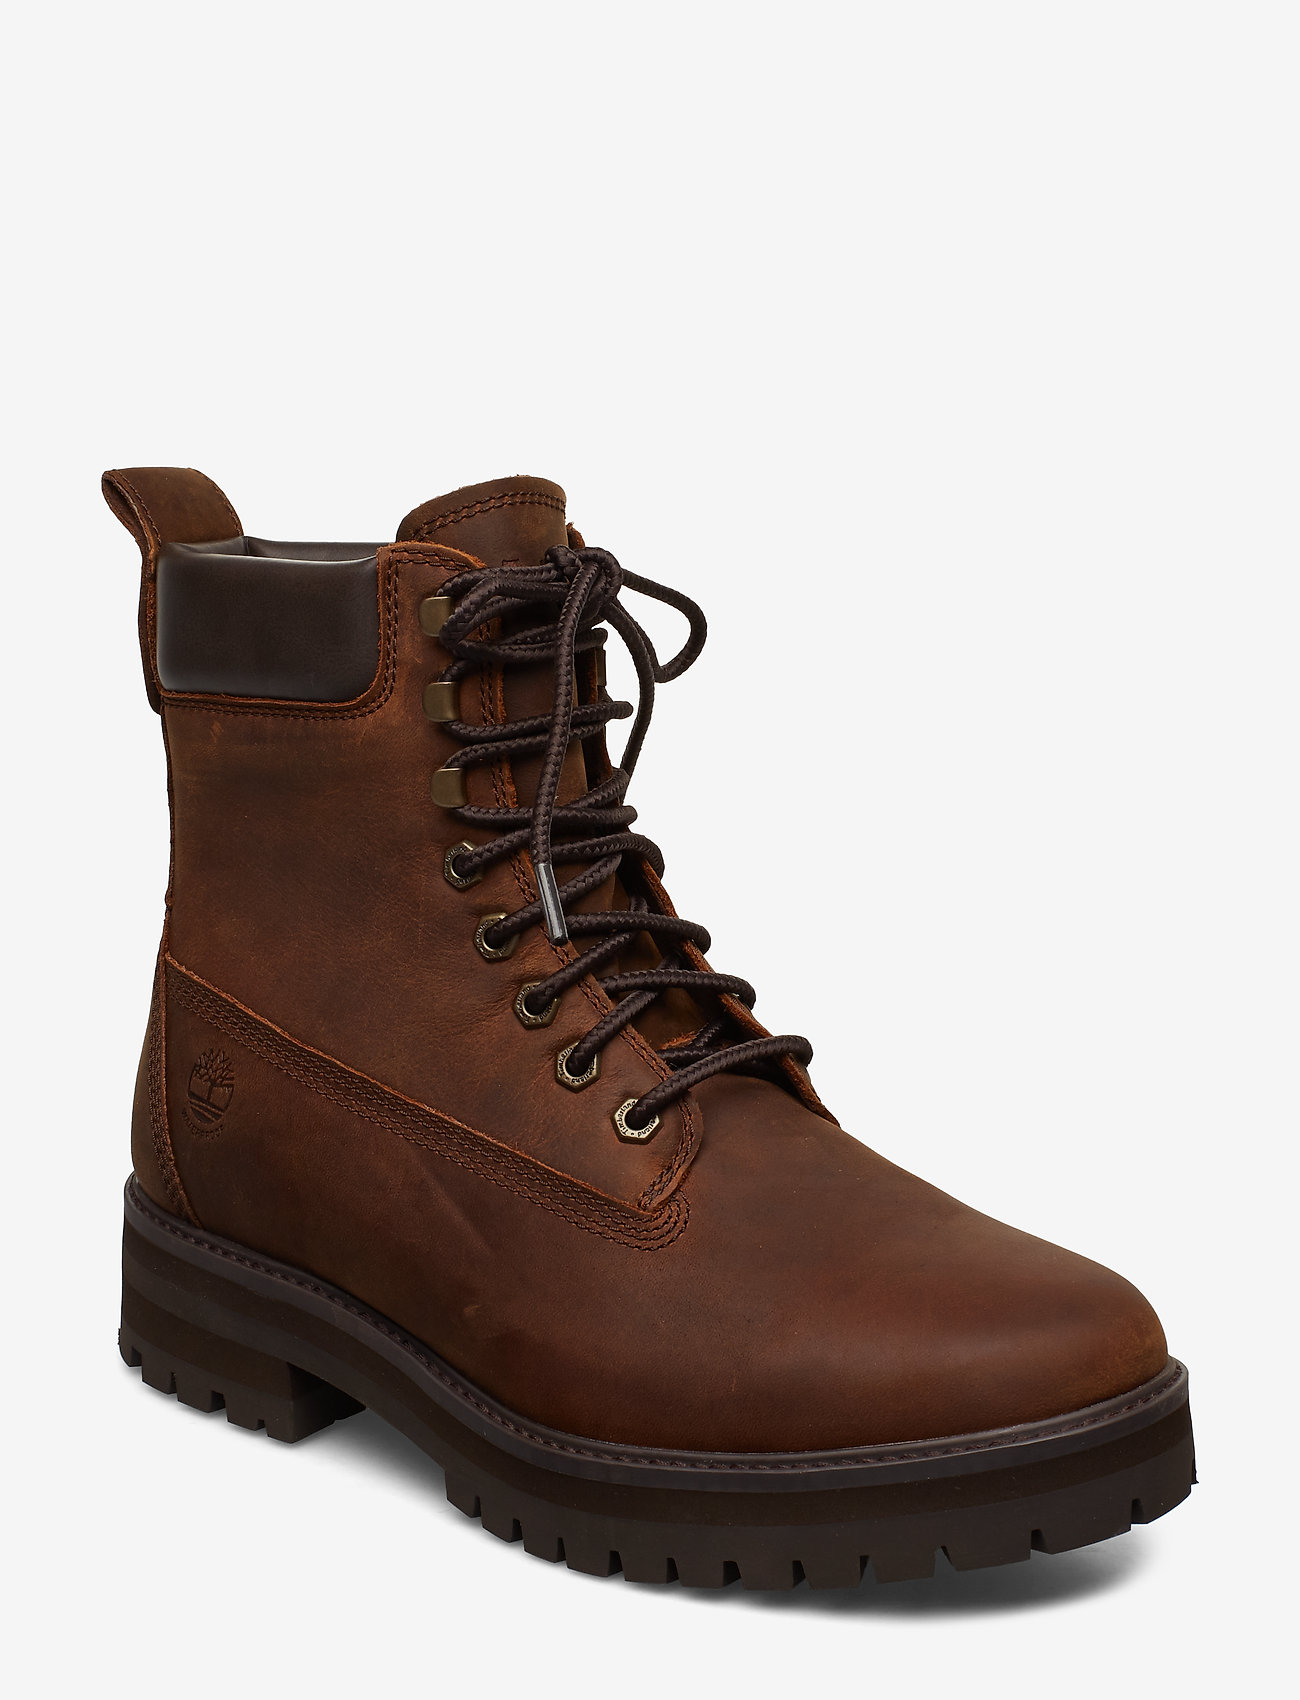 Courma Guy Boot Wp (Chestnut) (149.96